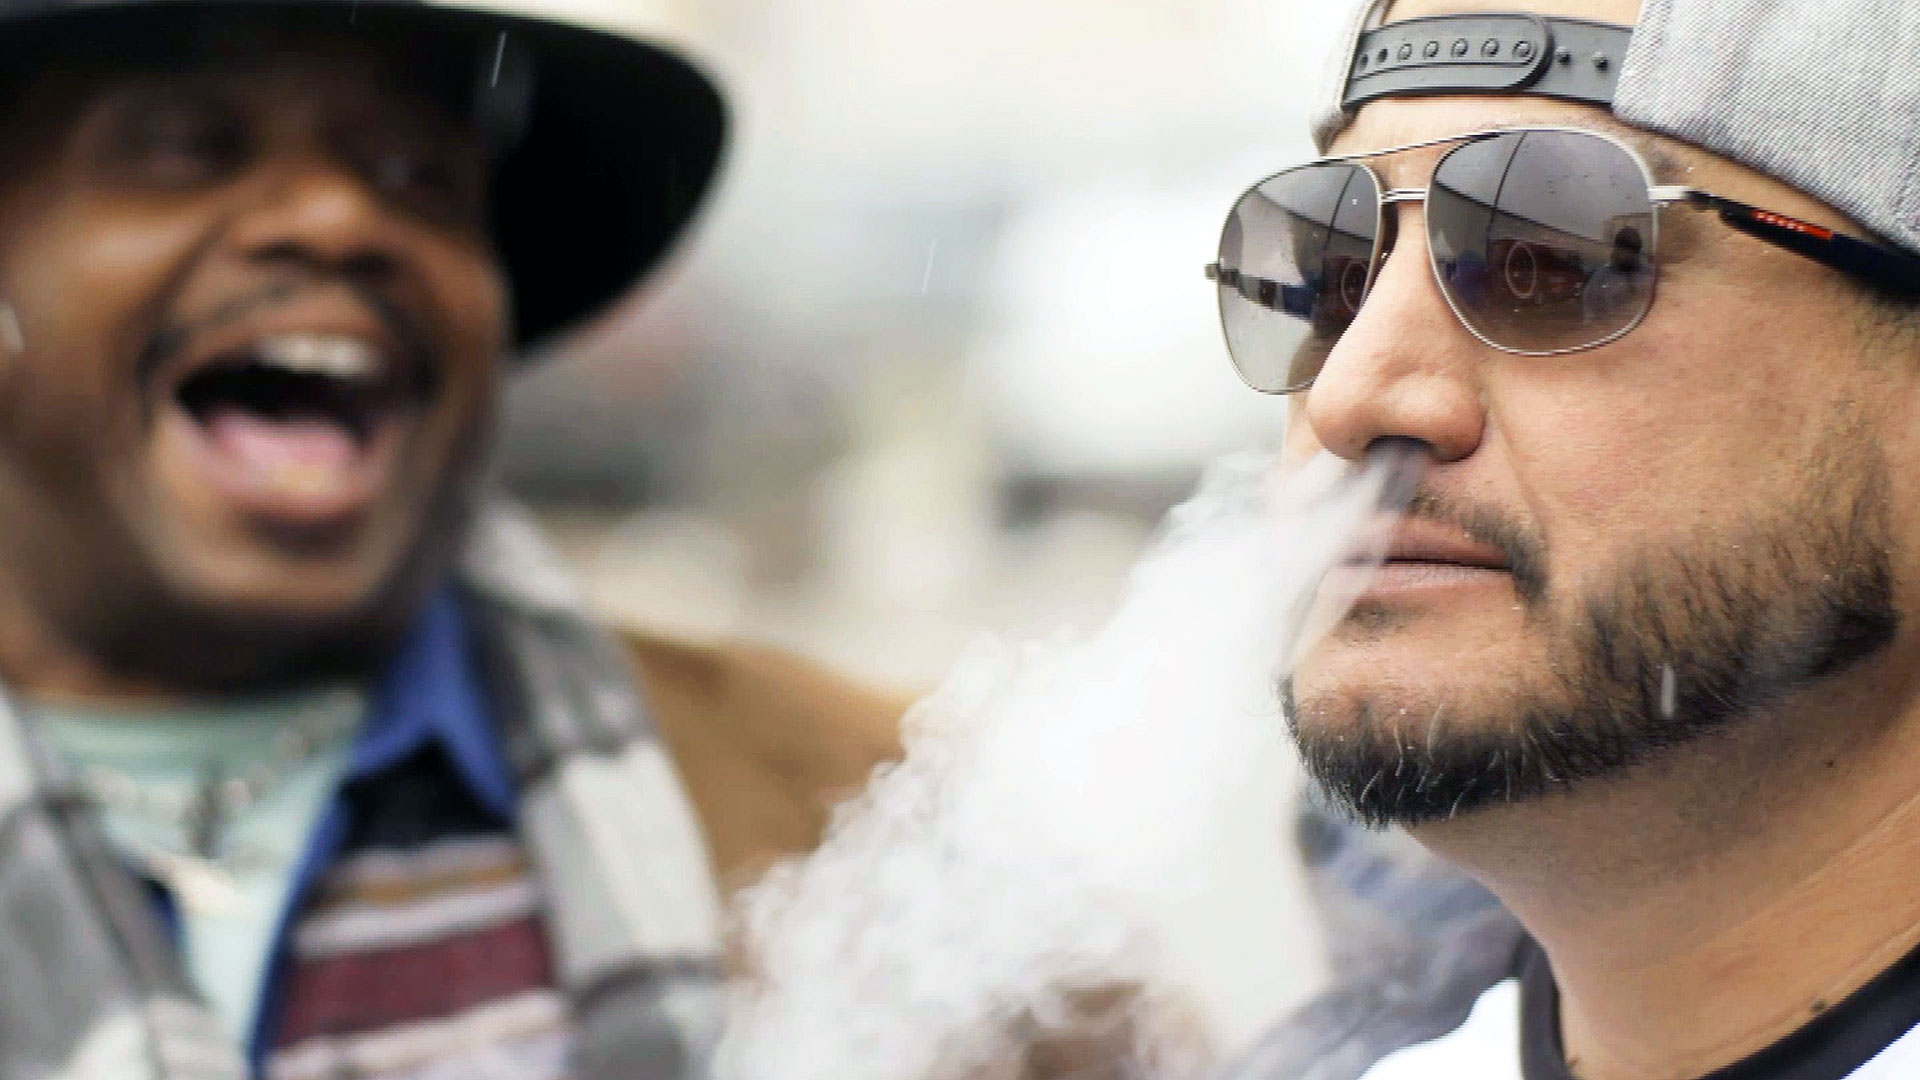 The Highs and Lows of the Weed Business